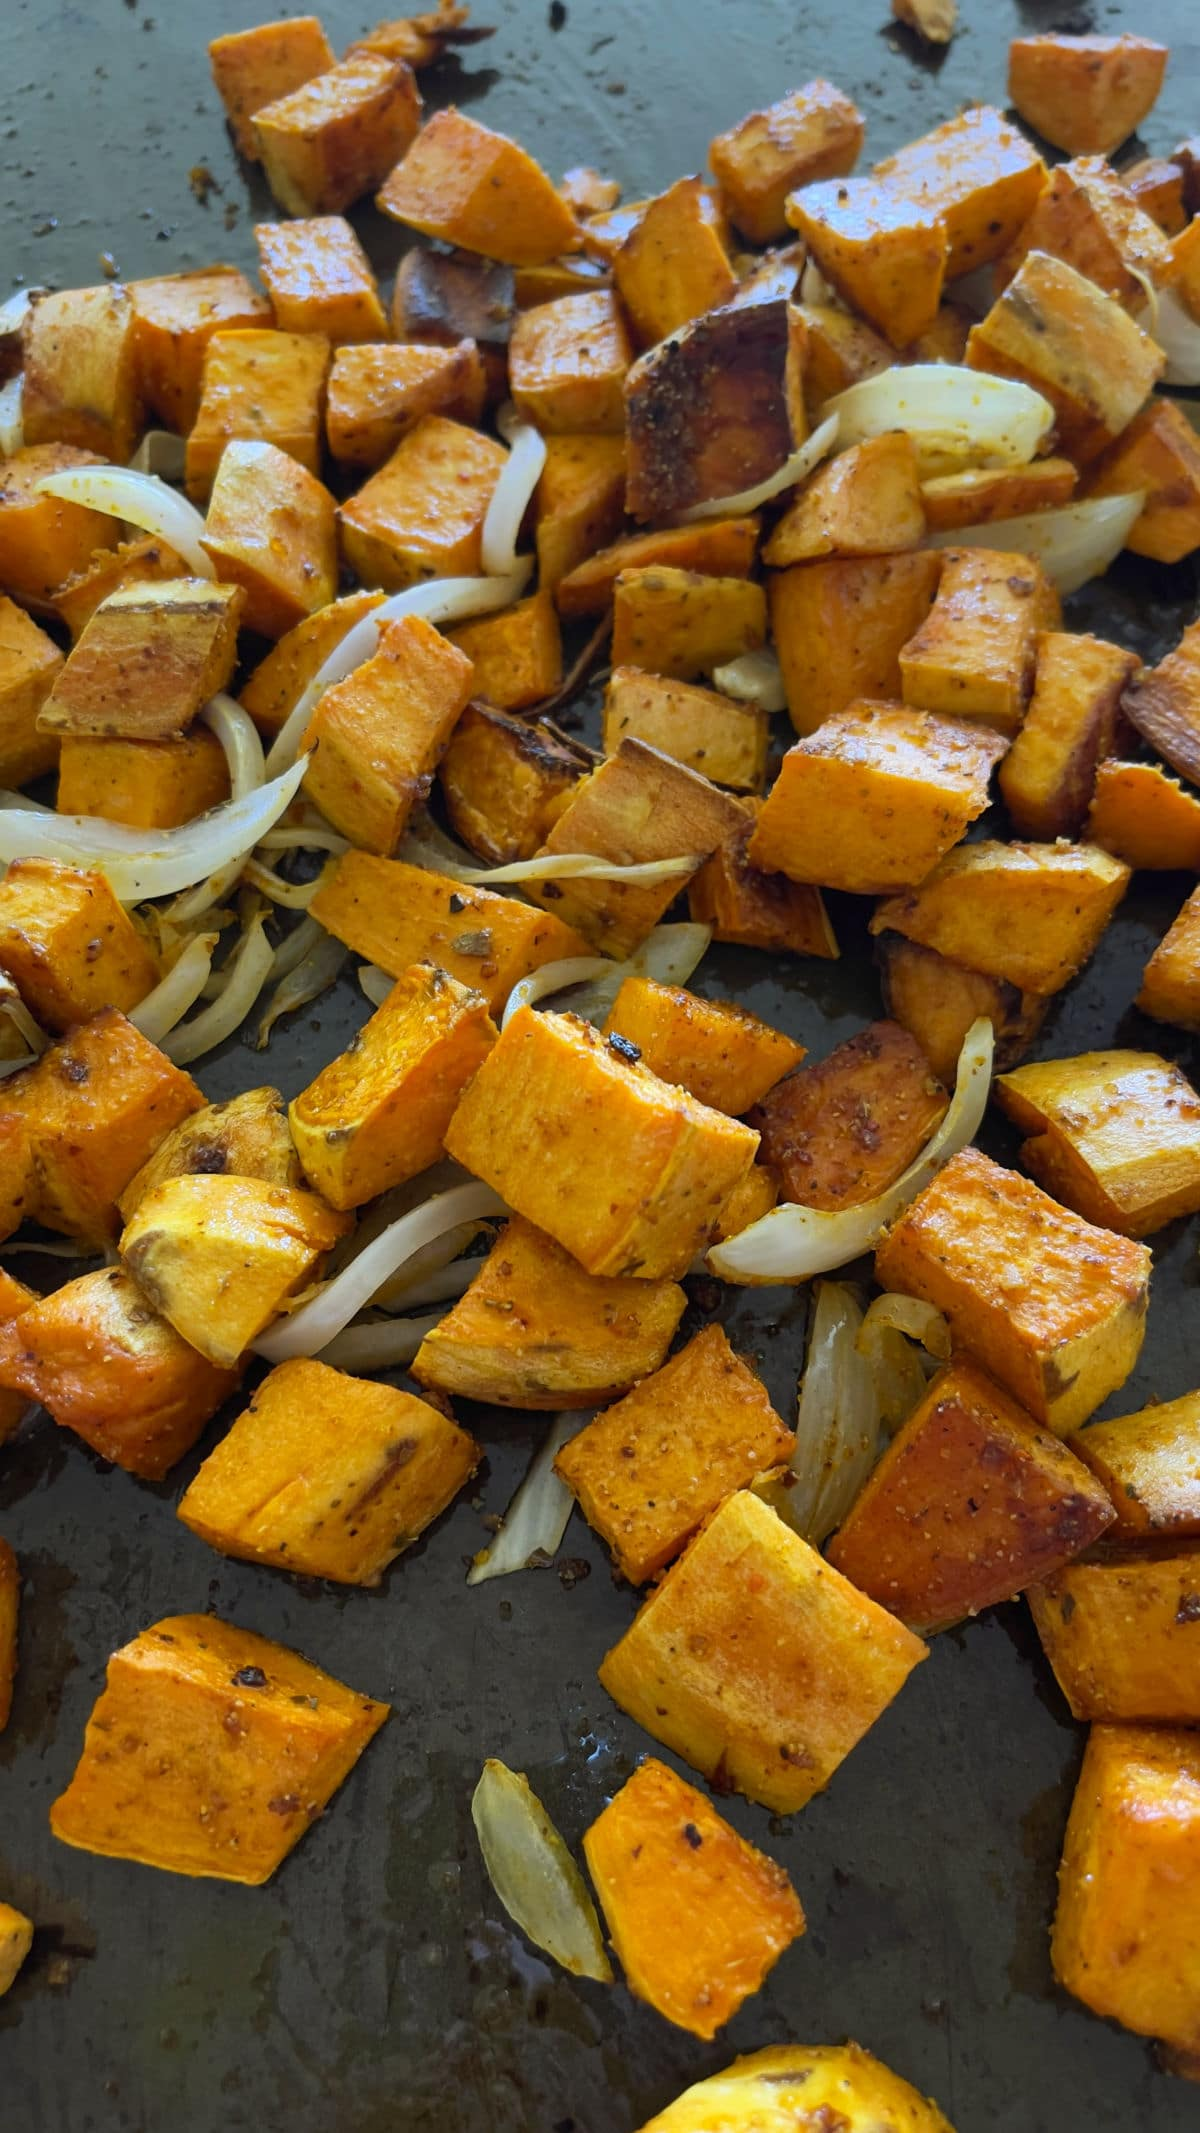 Roasted weet potatoes and onions on a baking tray